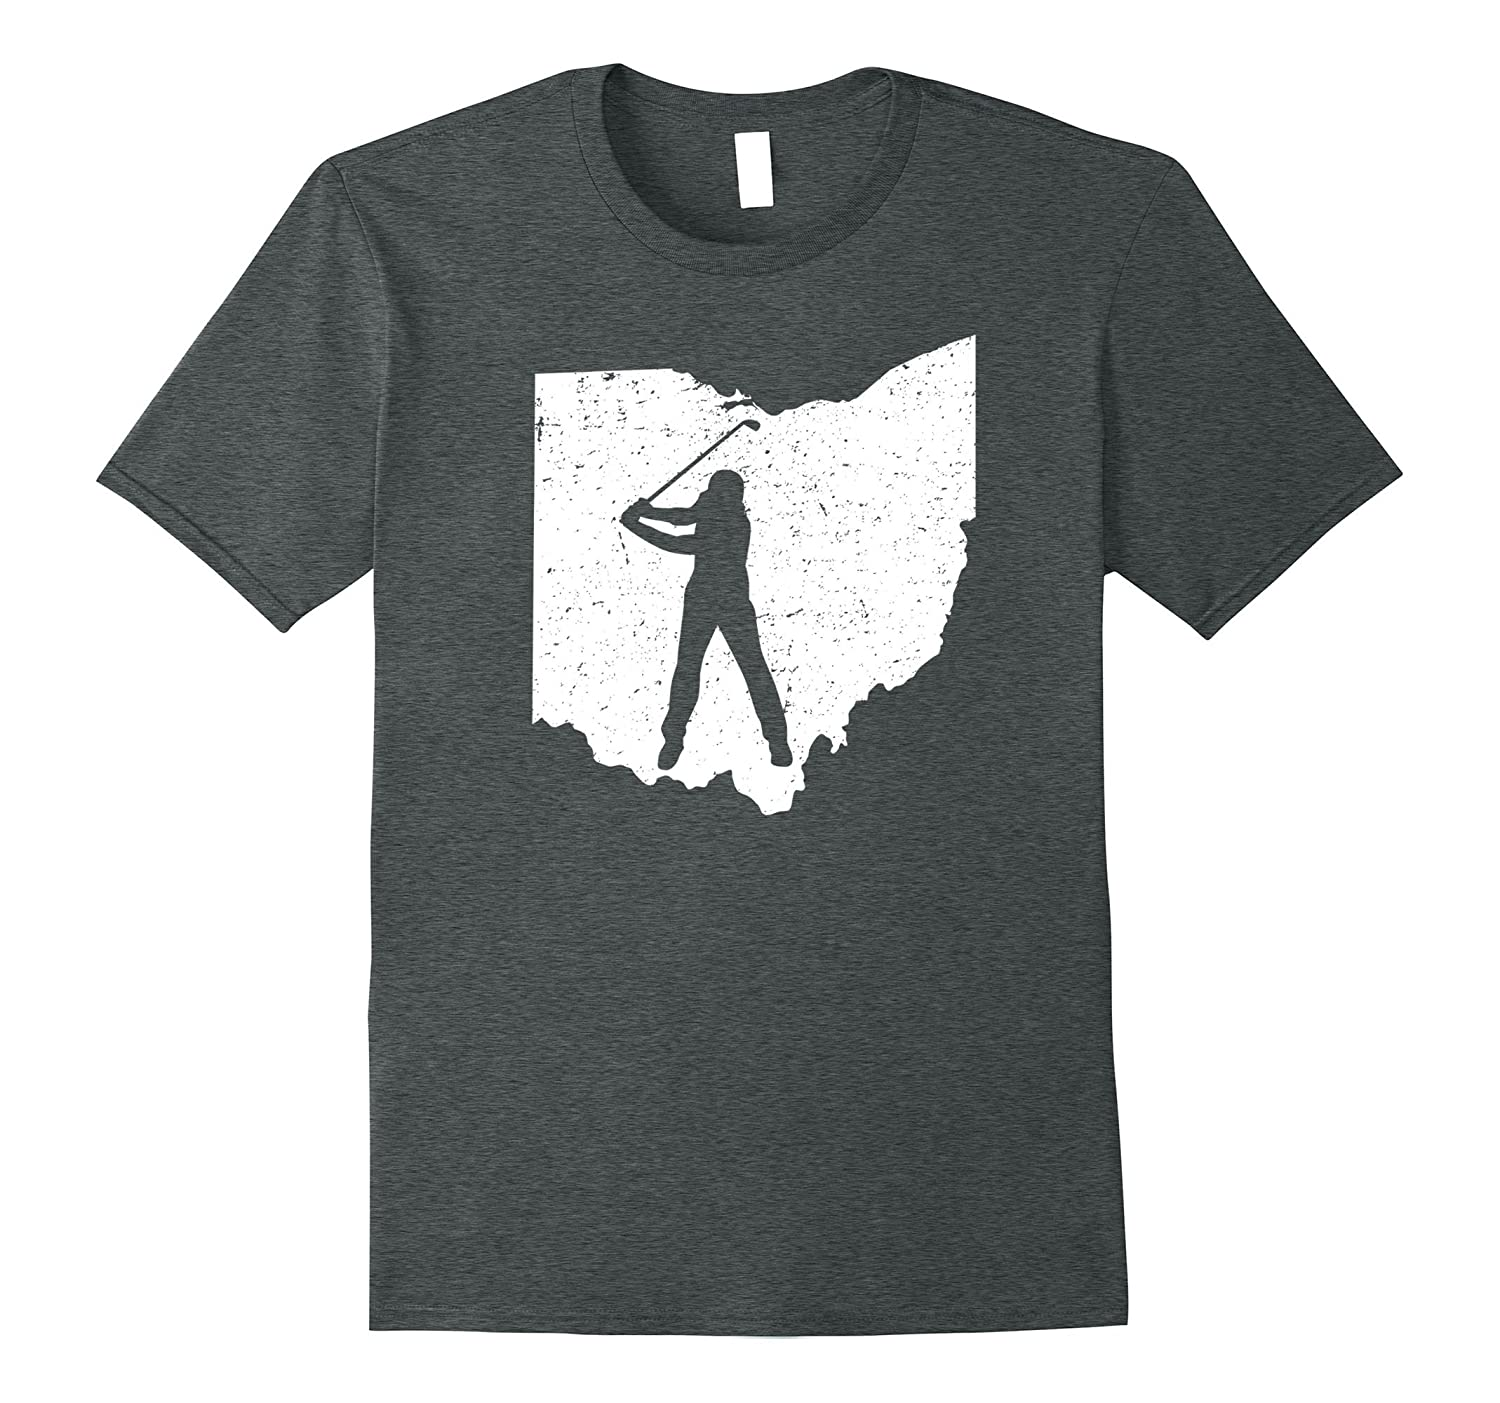 Ohio golf shirt funny state player gift love t shirt t for Ohio state golf shirt